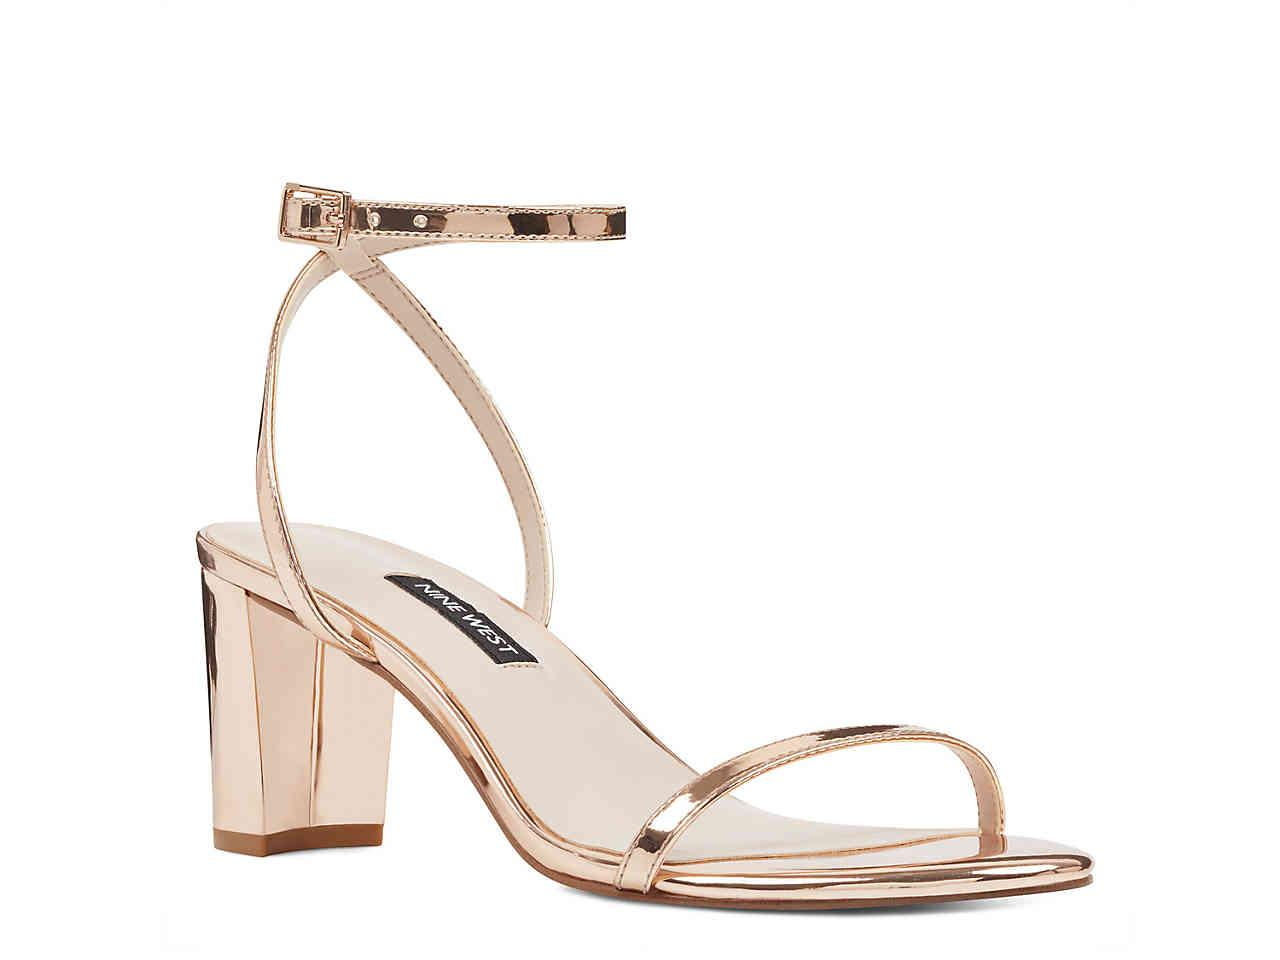 61a21ff9b5a Lyst - Nine West Provein Sandal in Metallic